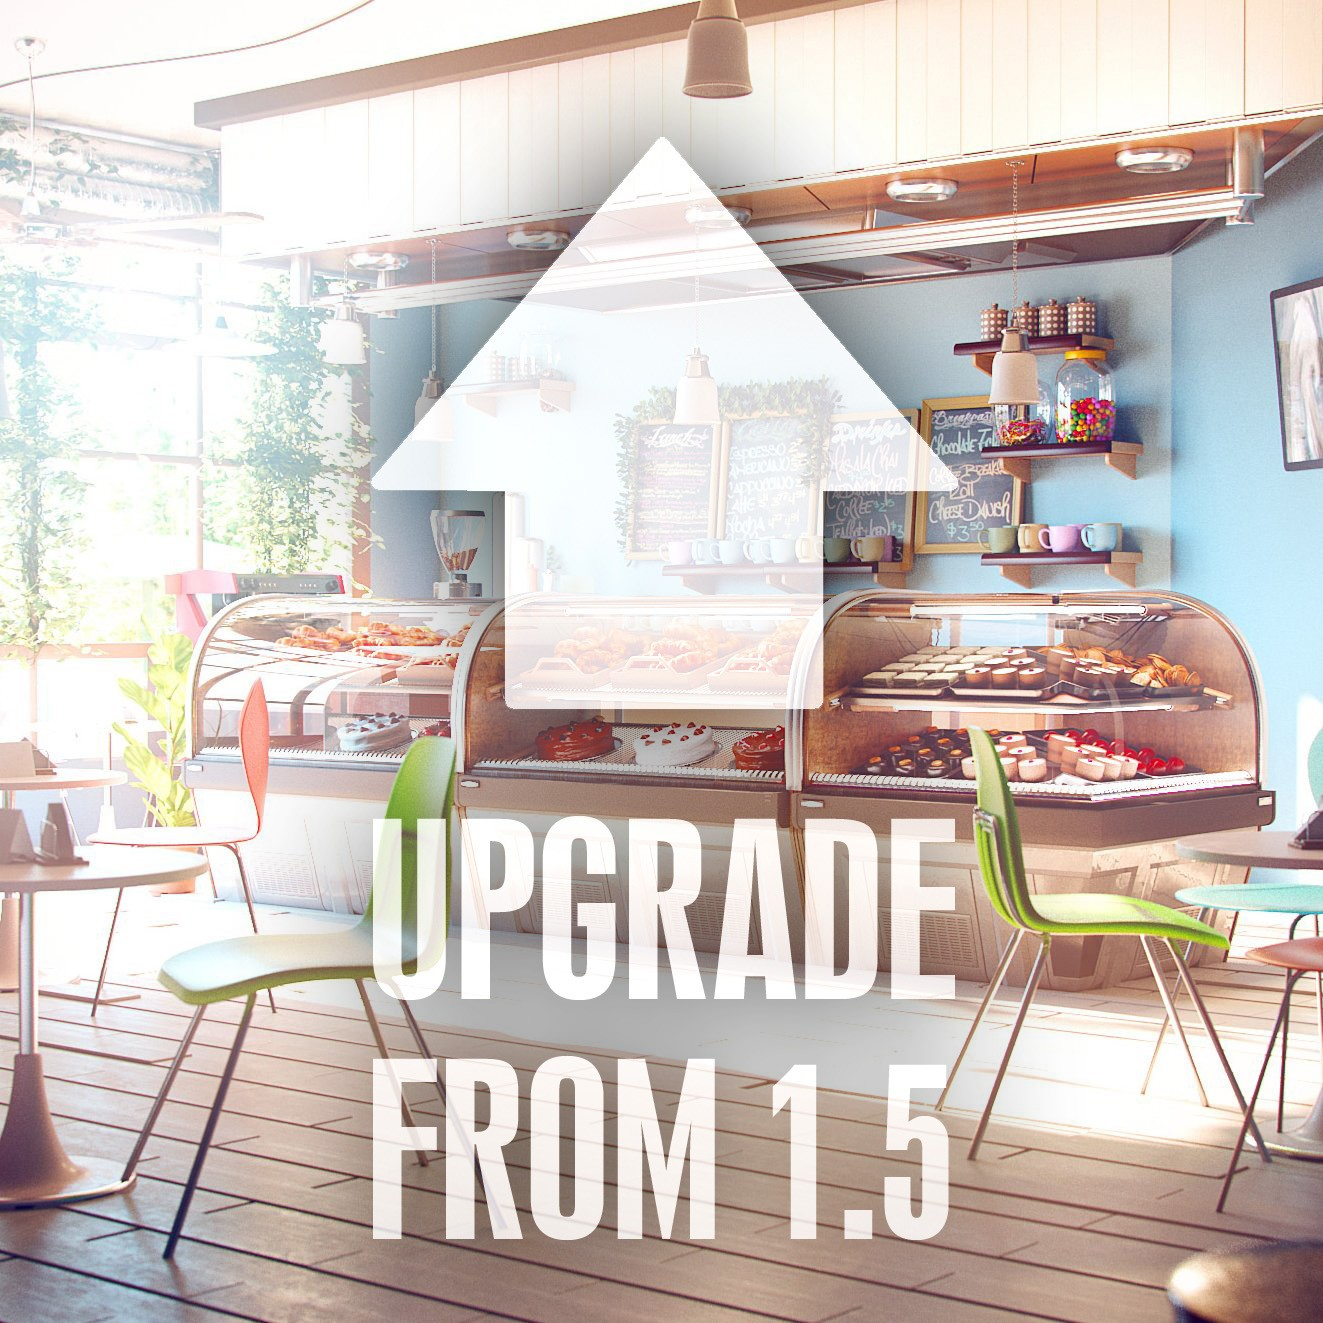 Upgrade from V-ray 1.5 to 3.5 for 3ds max